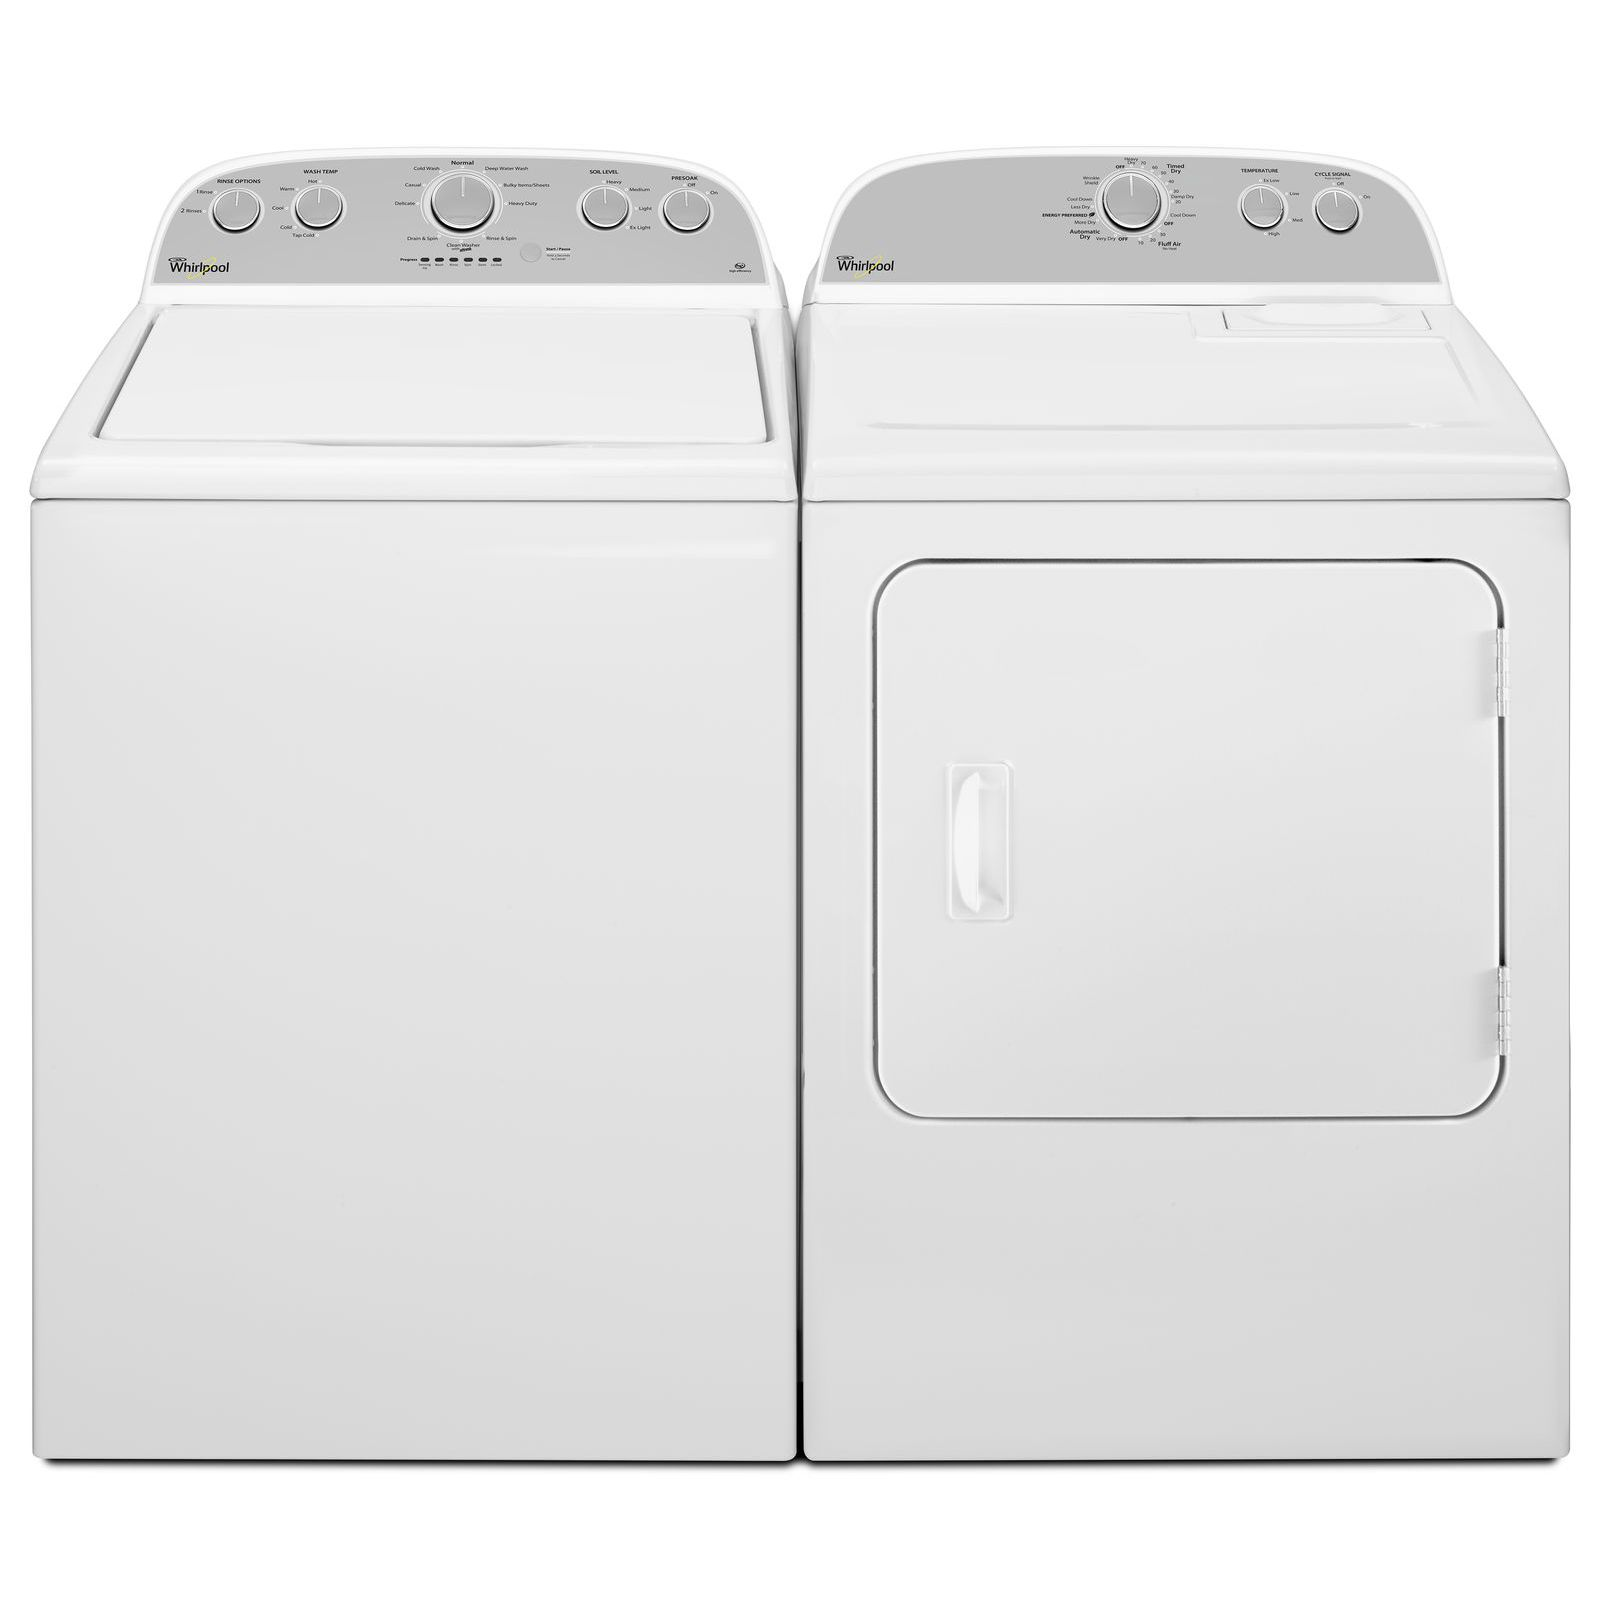 Whirlpool 3.5 cu. ft. High-Efficiency Top Load Washer - White